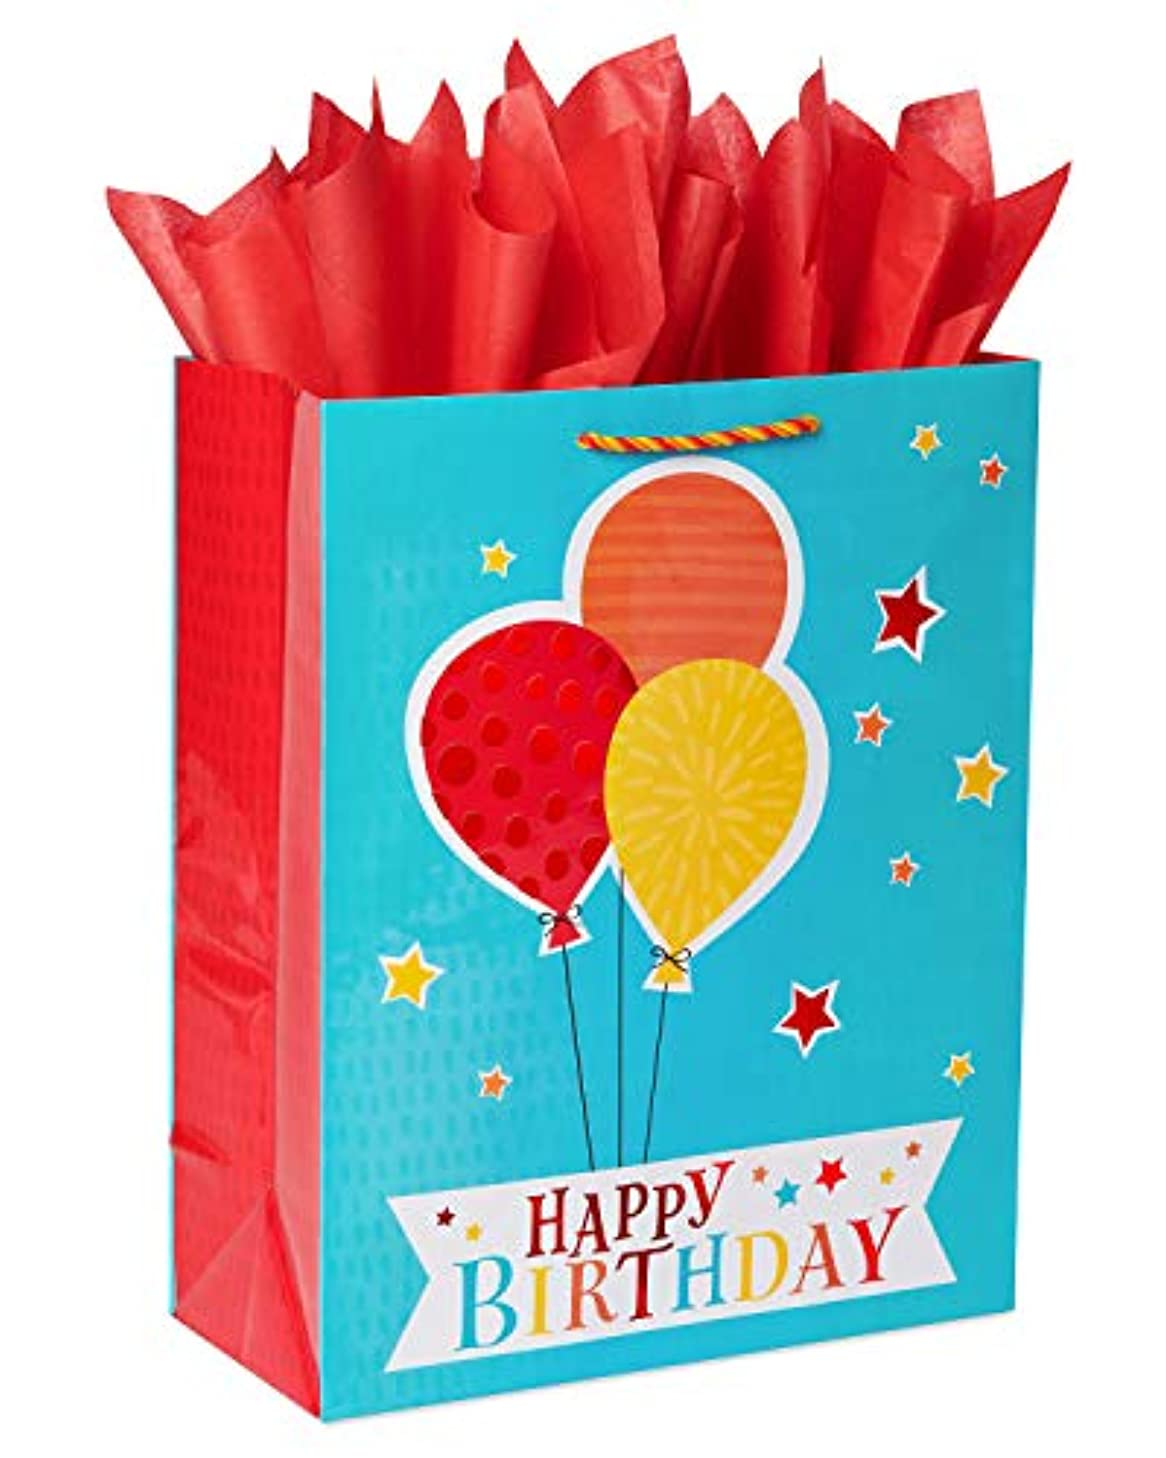 American Greetings 6424357 Gift Bag and Tissue, 1, multicolor